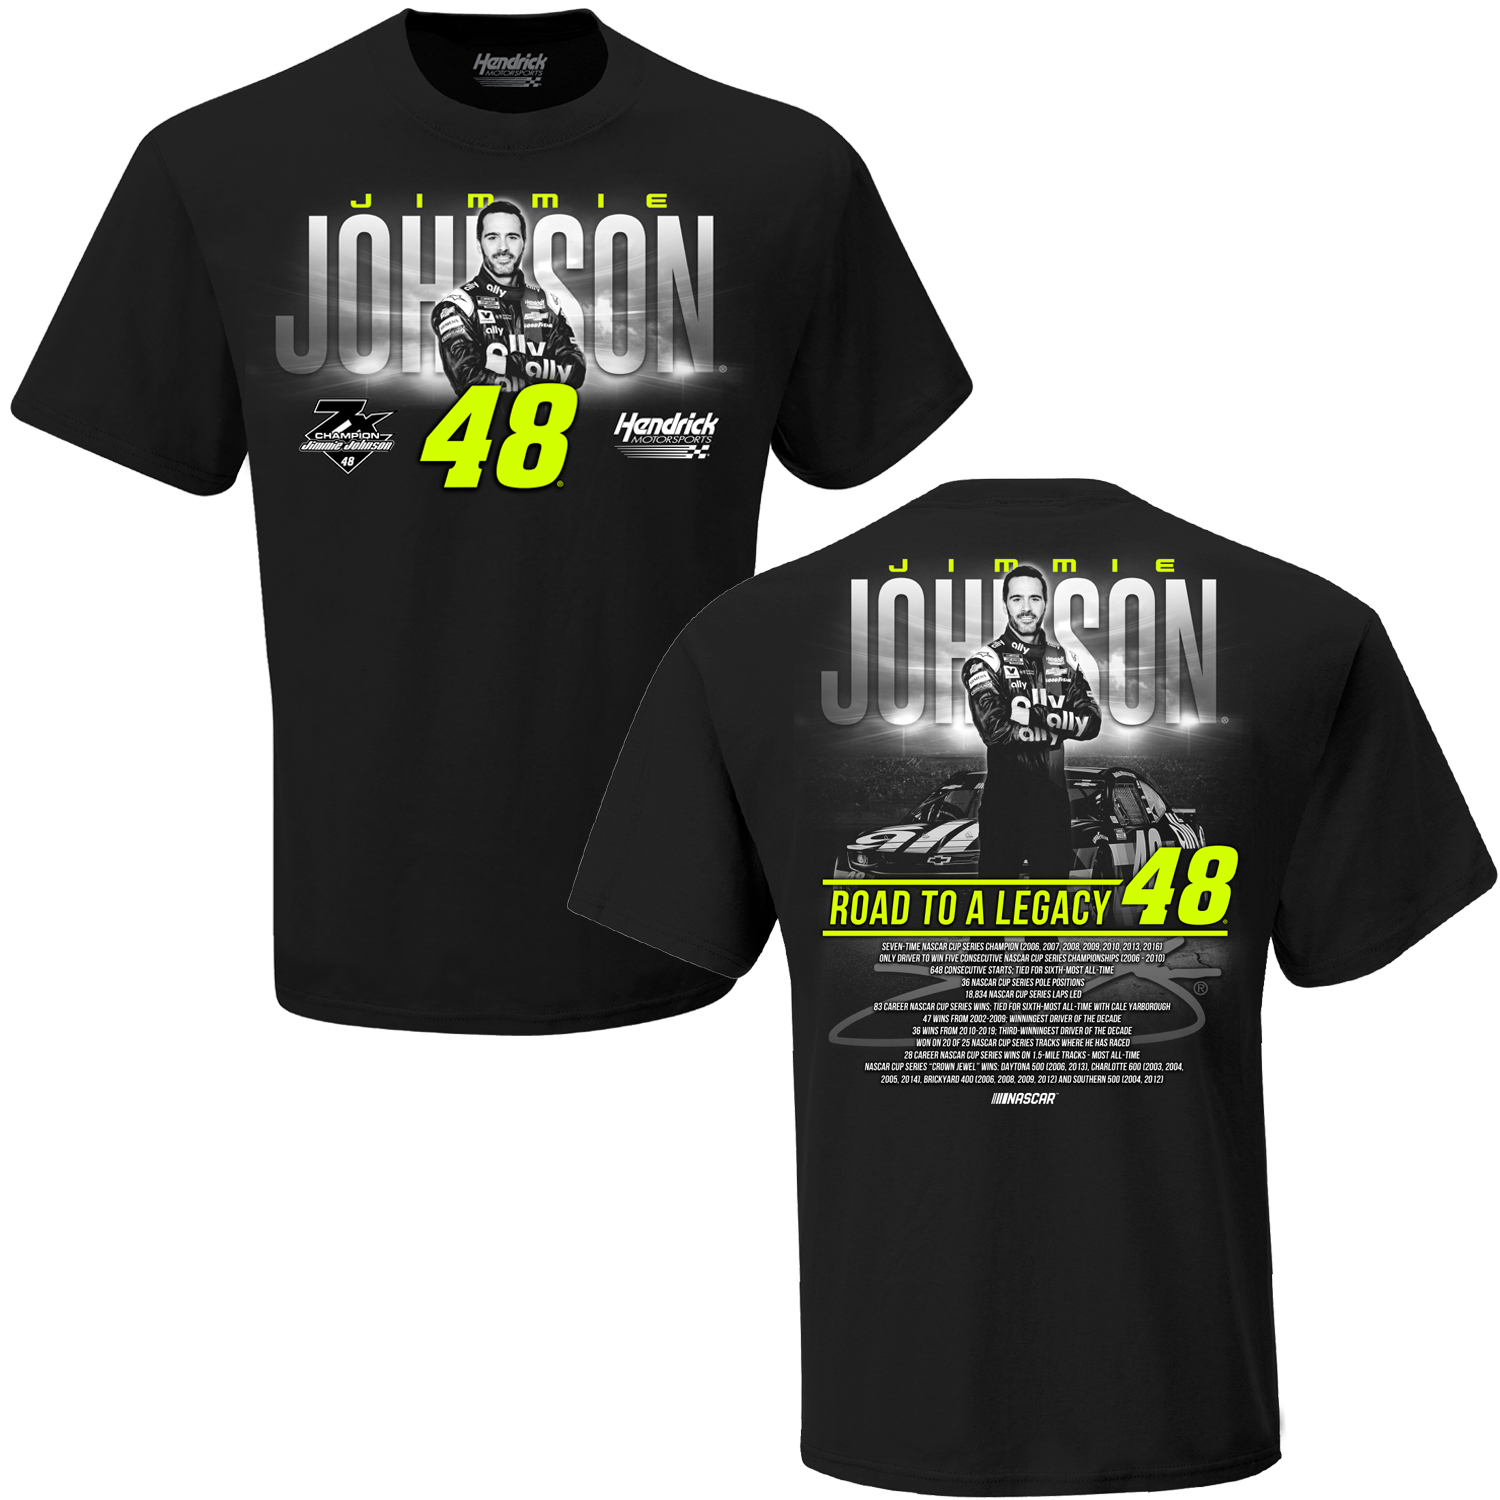 Jimmie Johnson #48 2020 Road to a Legacy T-shirt